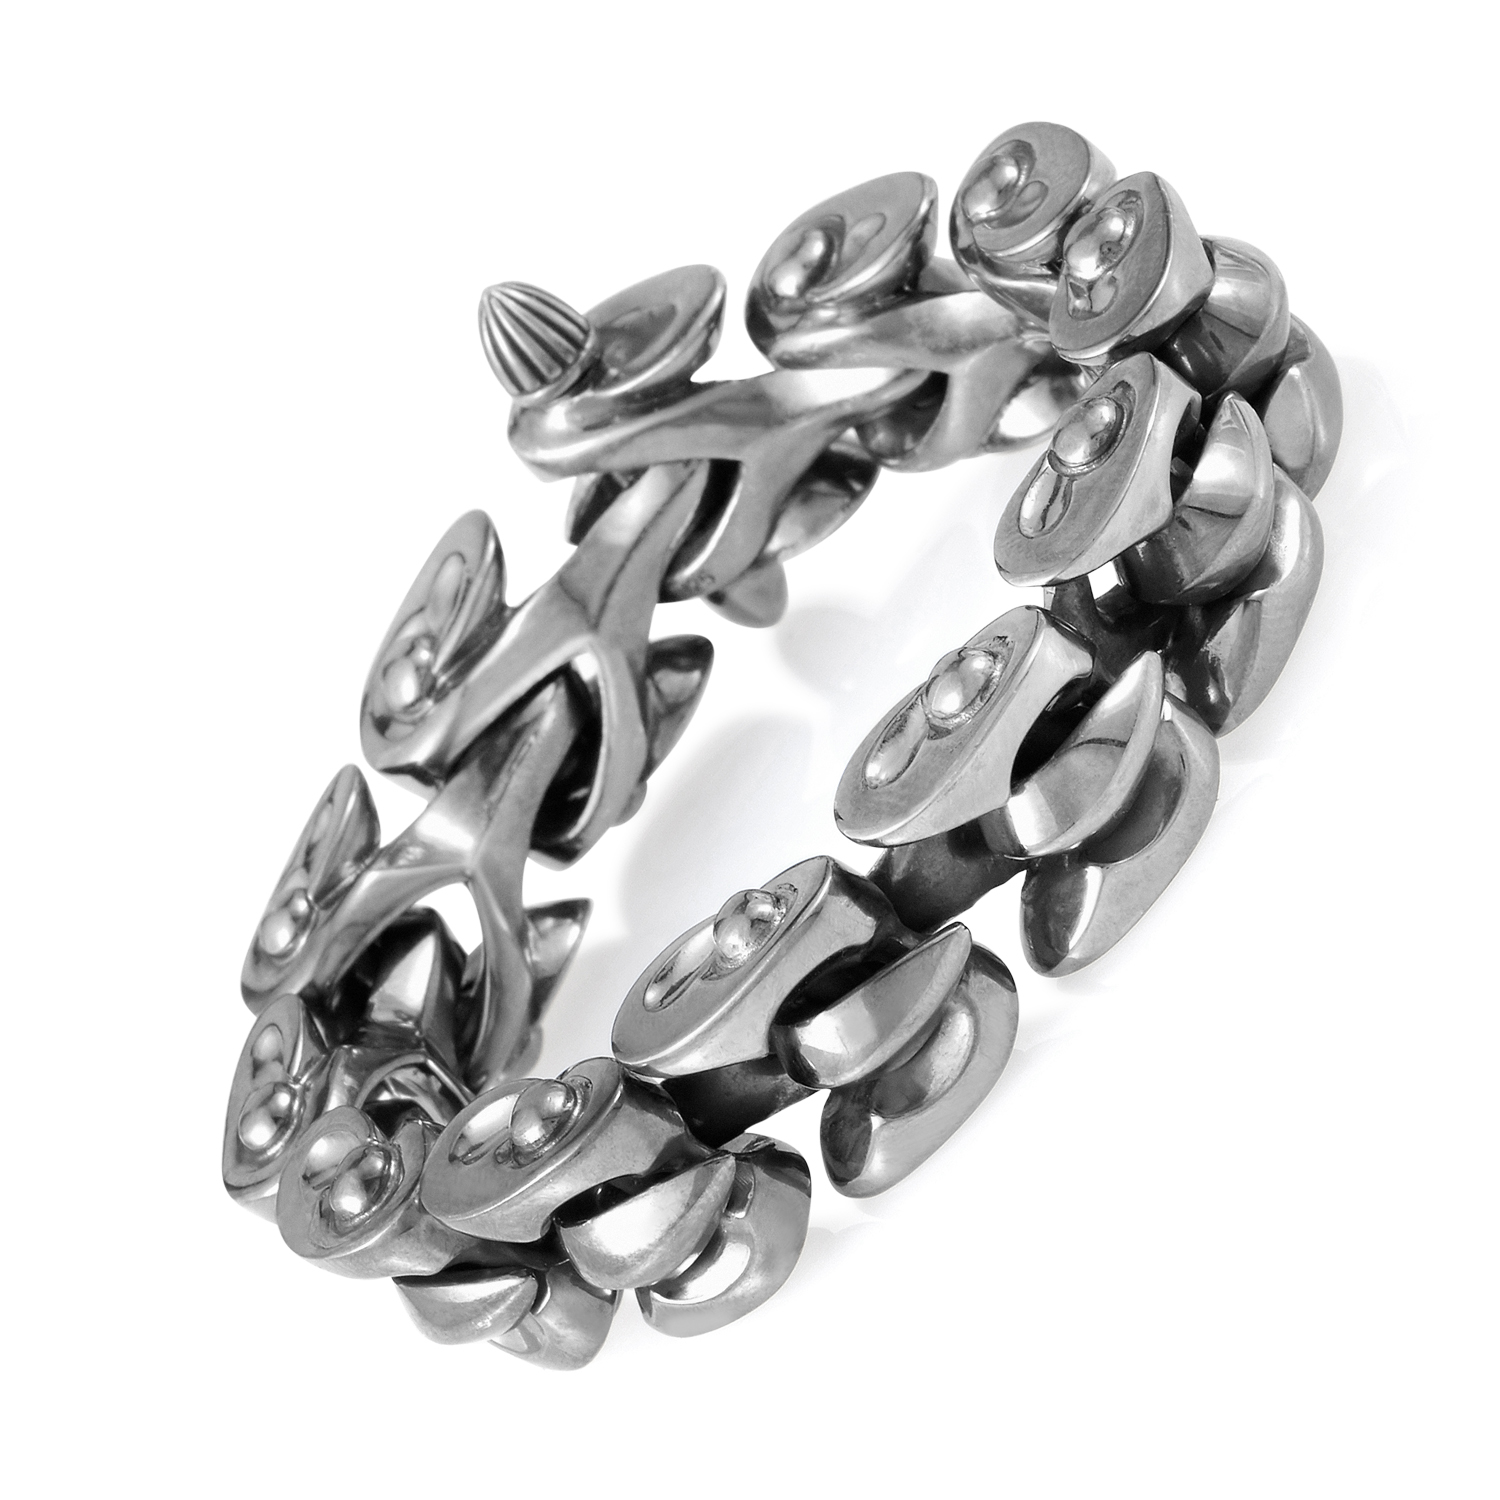 Sterling Silver Interlocking Rivet Bracelet 3013340001